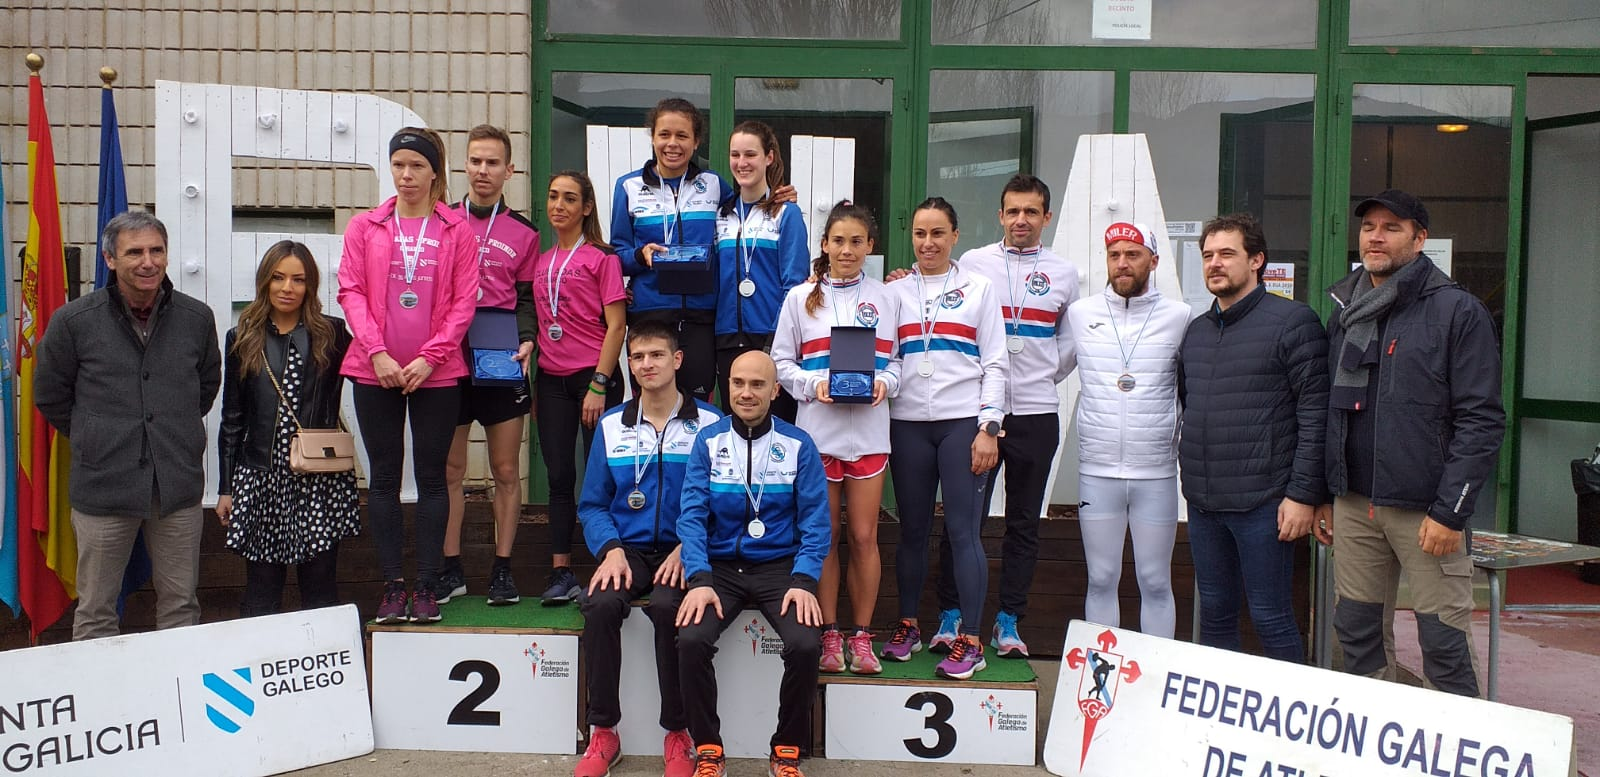 Gallego cross 2020 atletismo